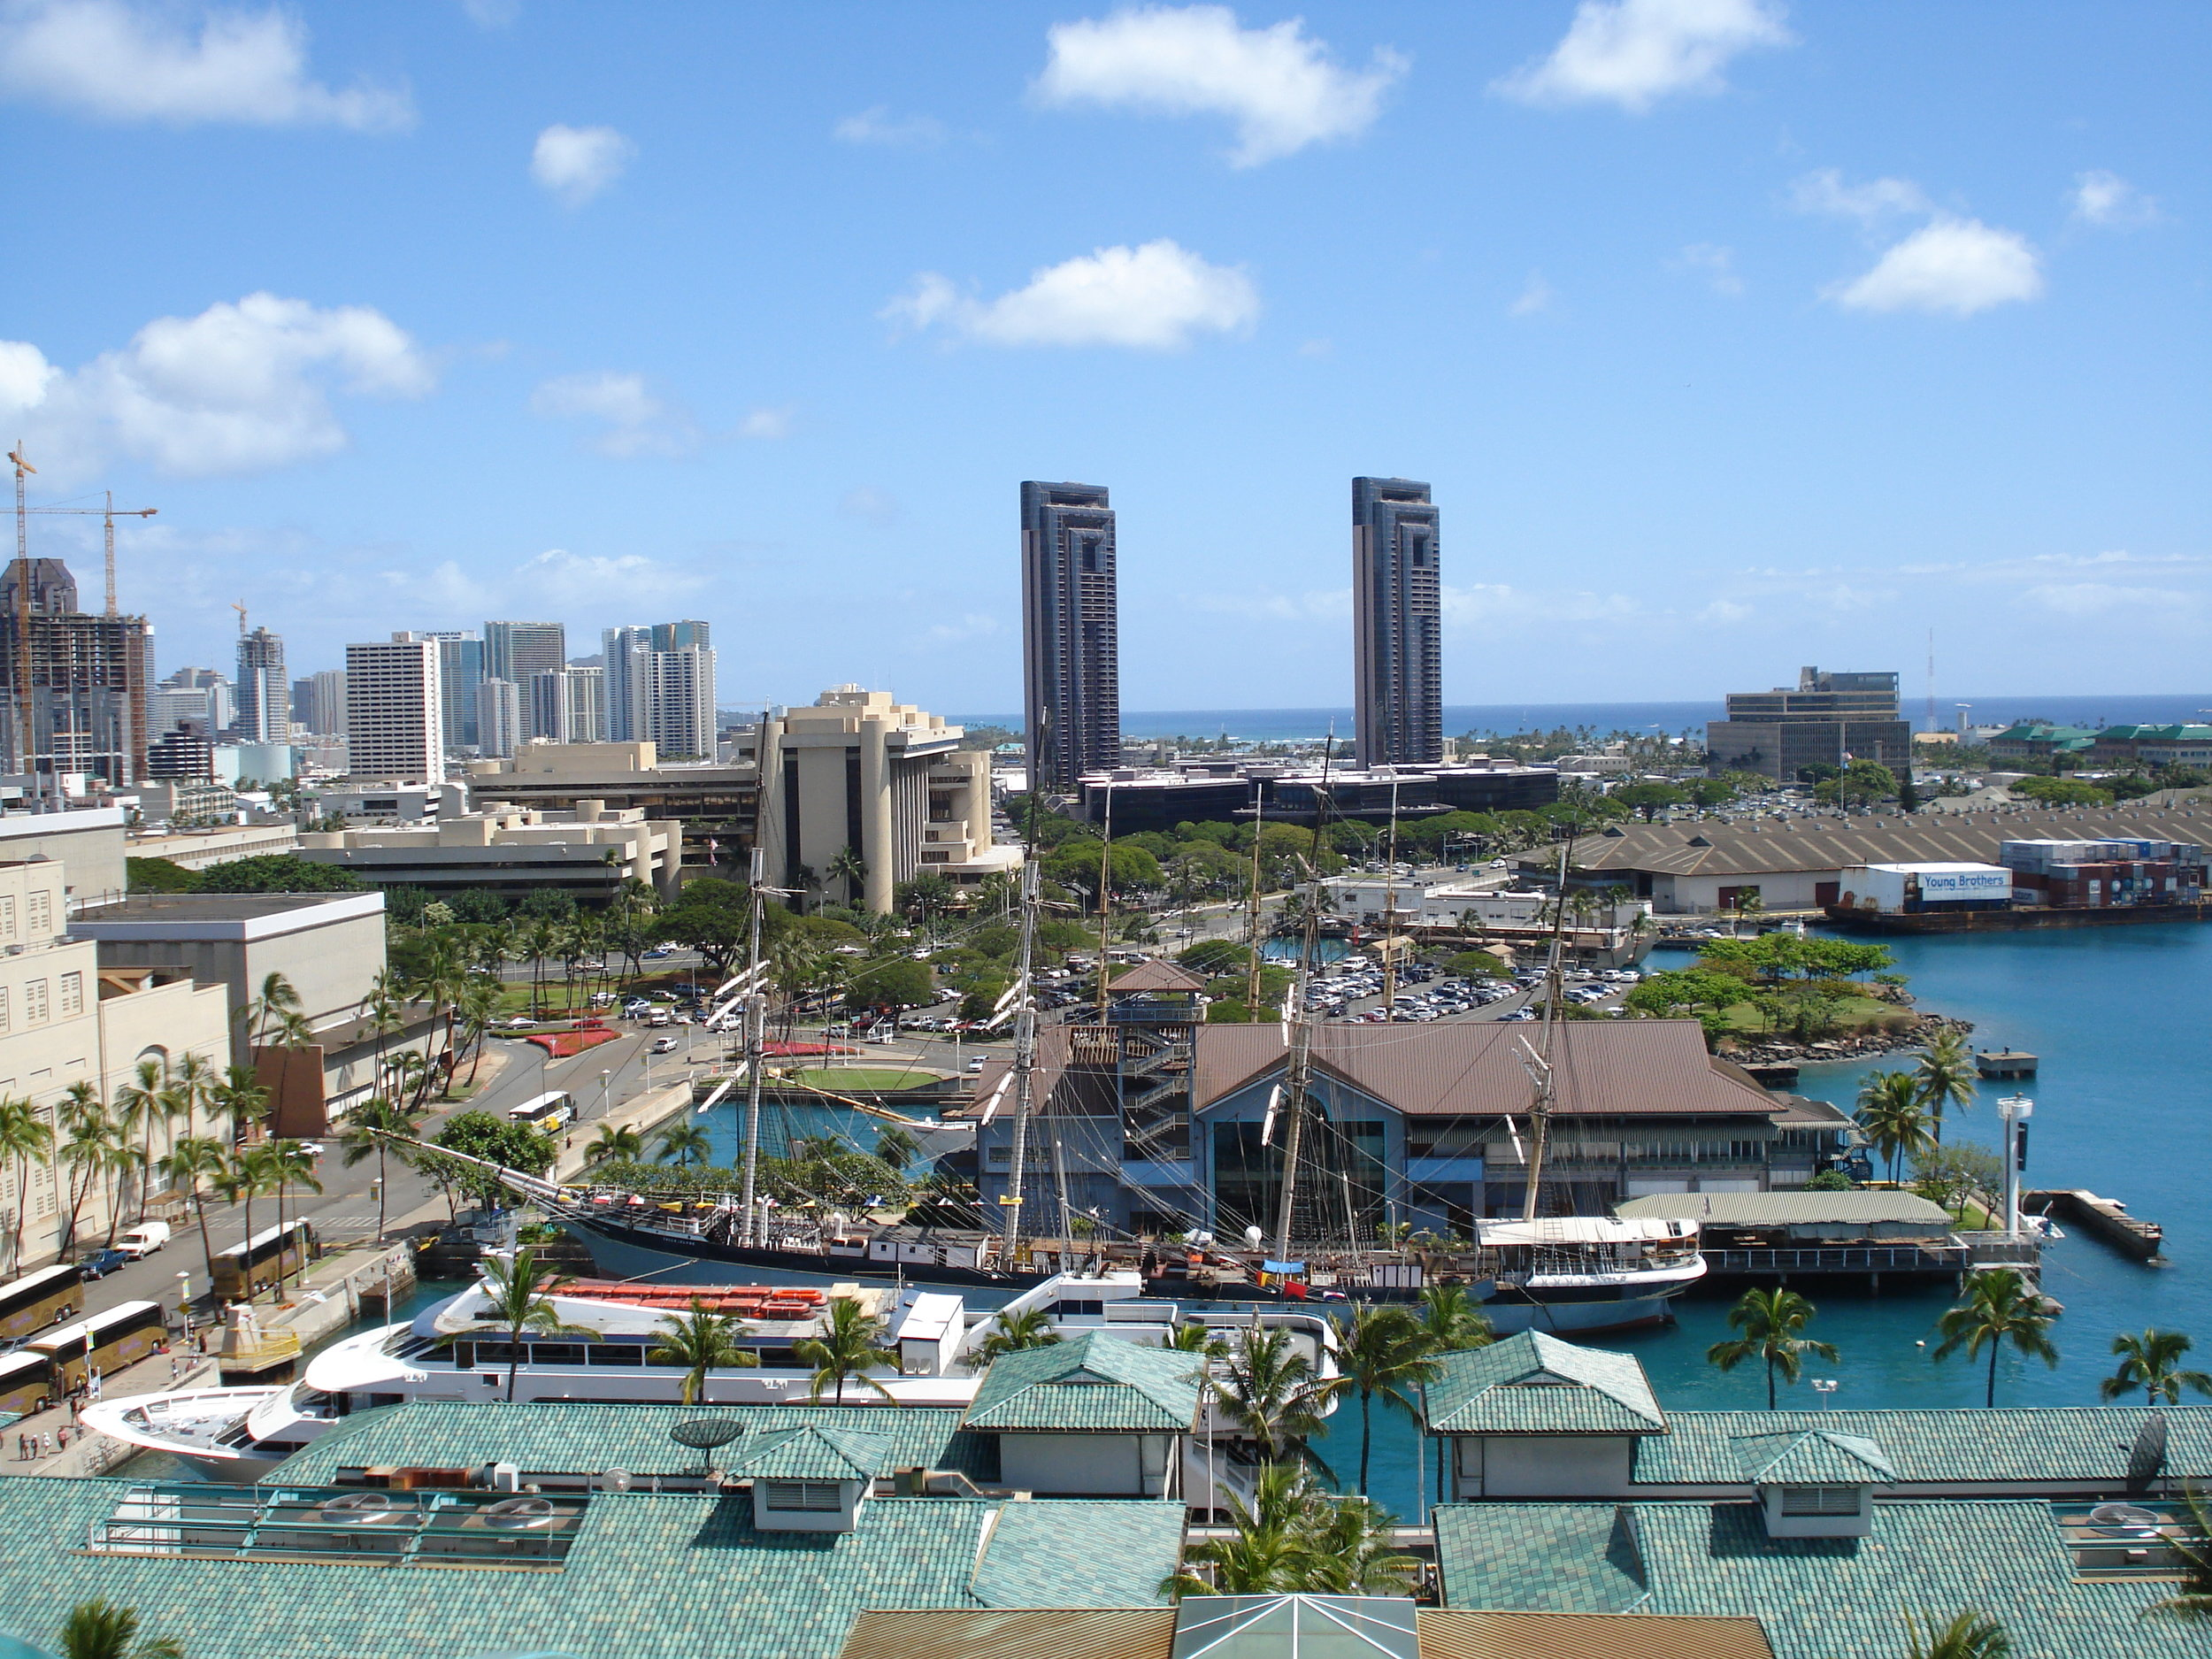 Hawaii wants to triple the cost of Commercial Marine Licenses